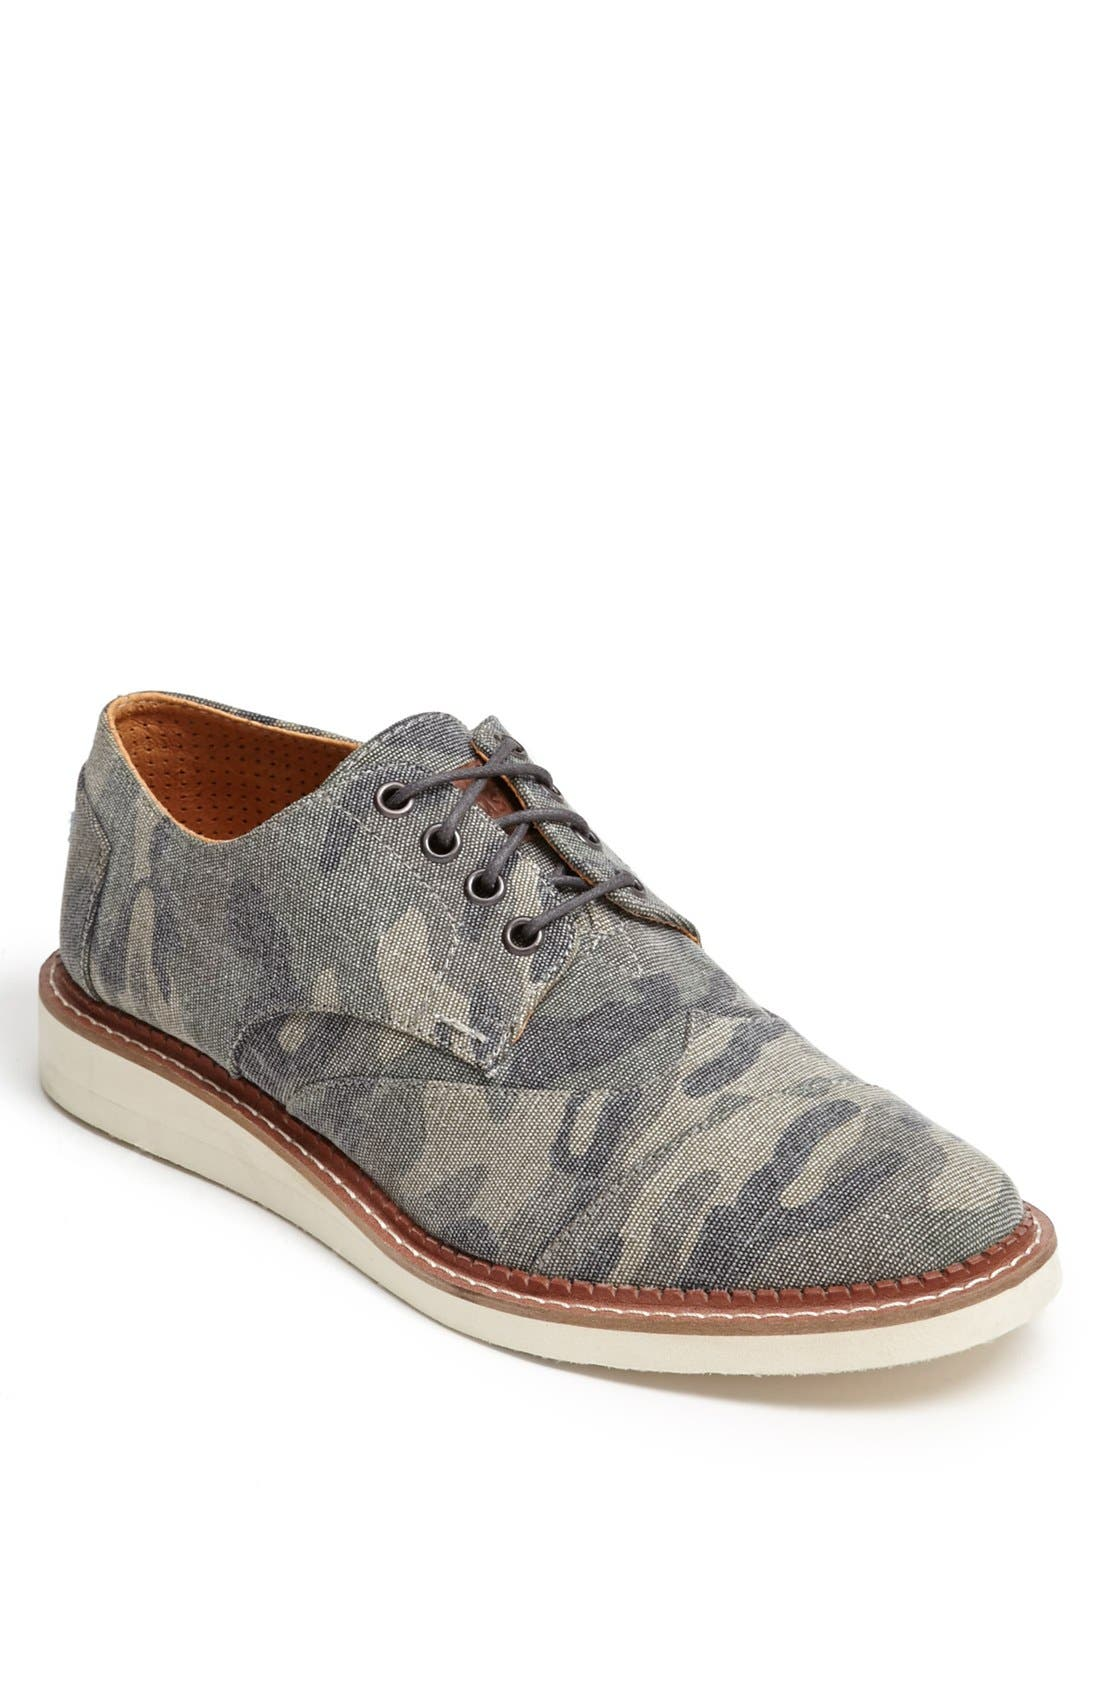 Alternate Image 1 Selected - TOMS 'Brogue' Wingtip (Men)